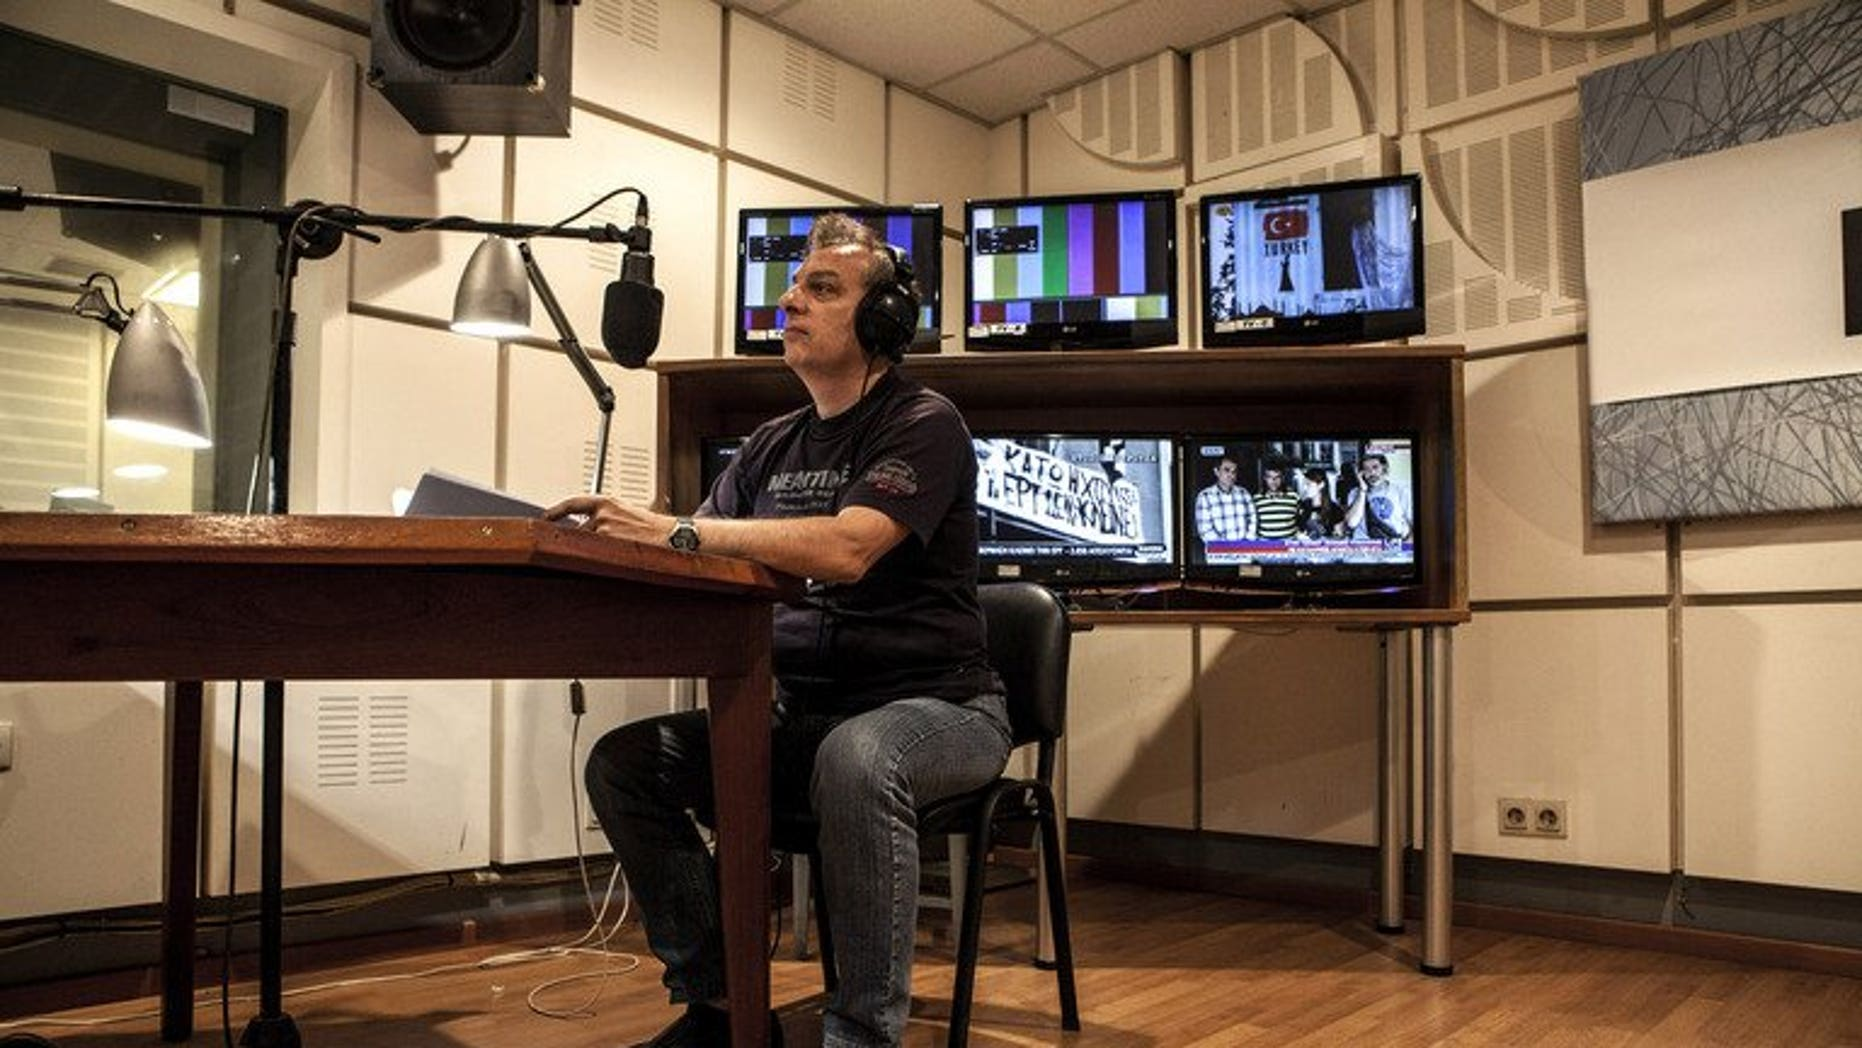 A worker at Greek state broadcaster ERT edits a news bulletin, in Athens on July 10, 2013. The network went back on air, one month after the government abruptly pulled the plug on state broadcaster ERT causing national and international uproar.